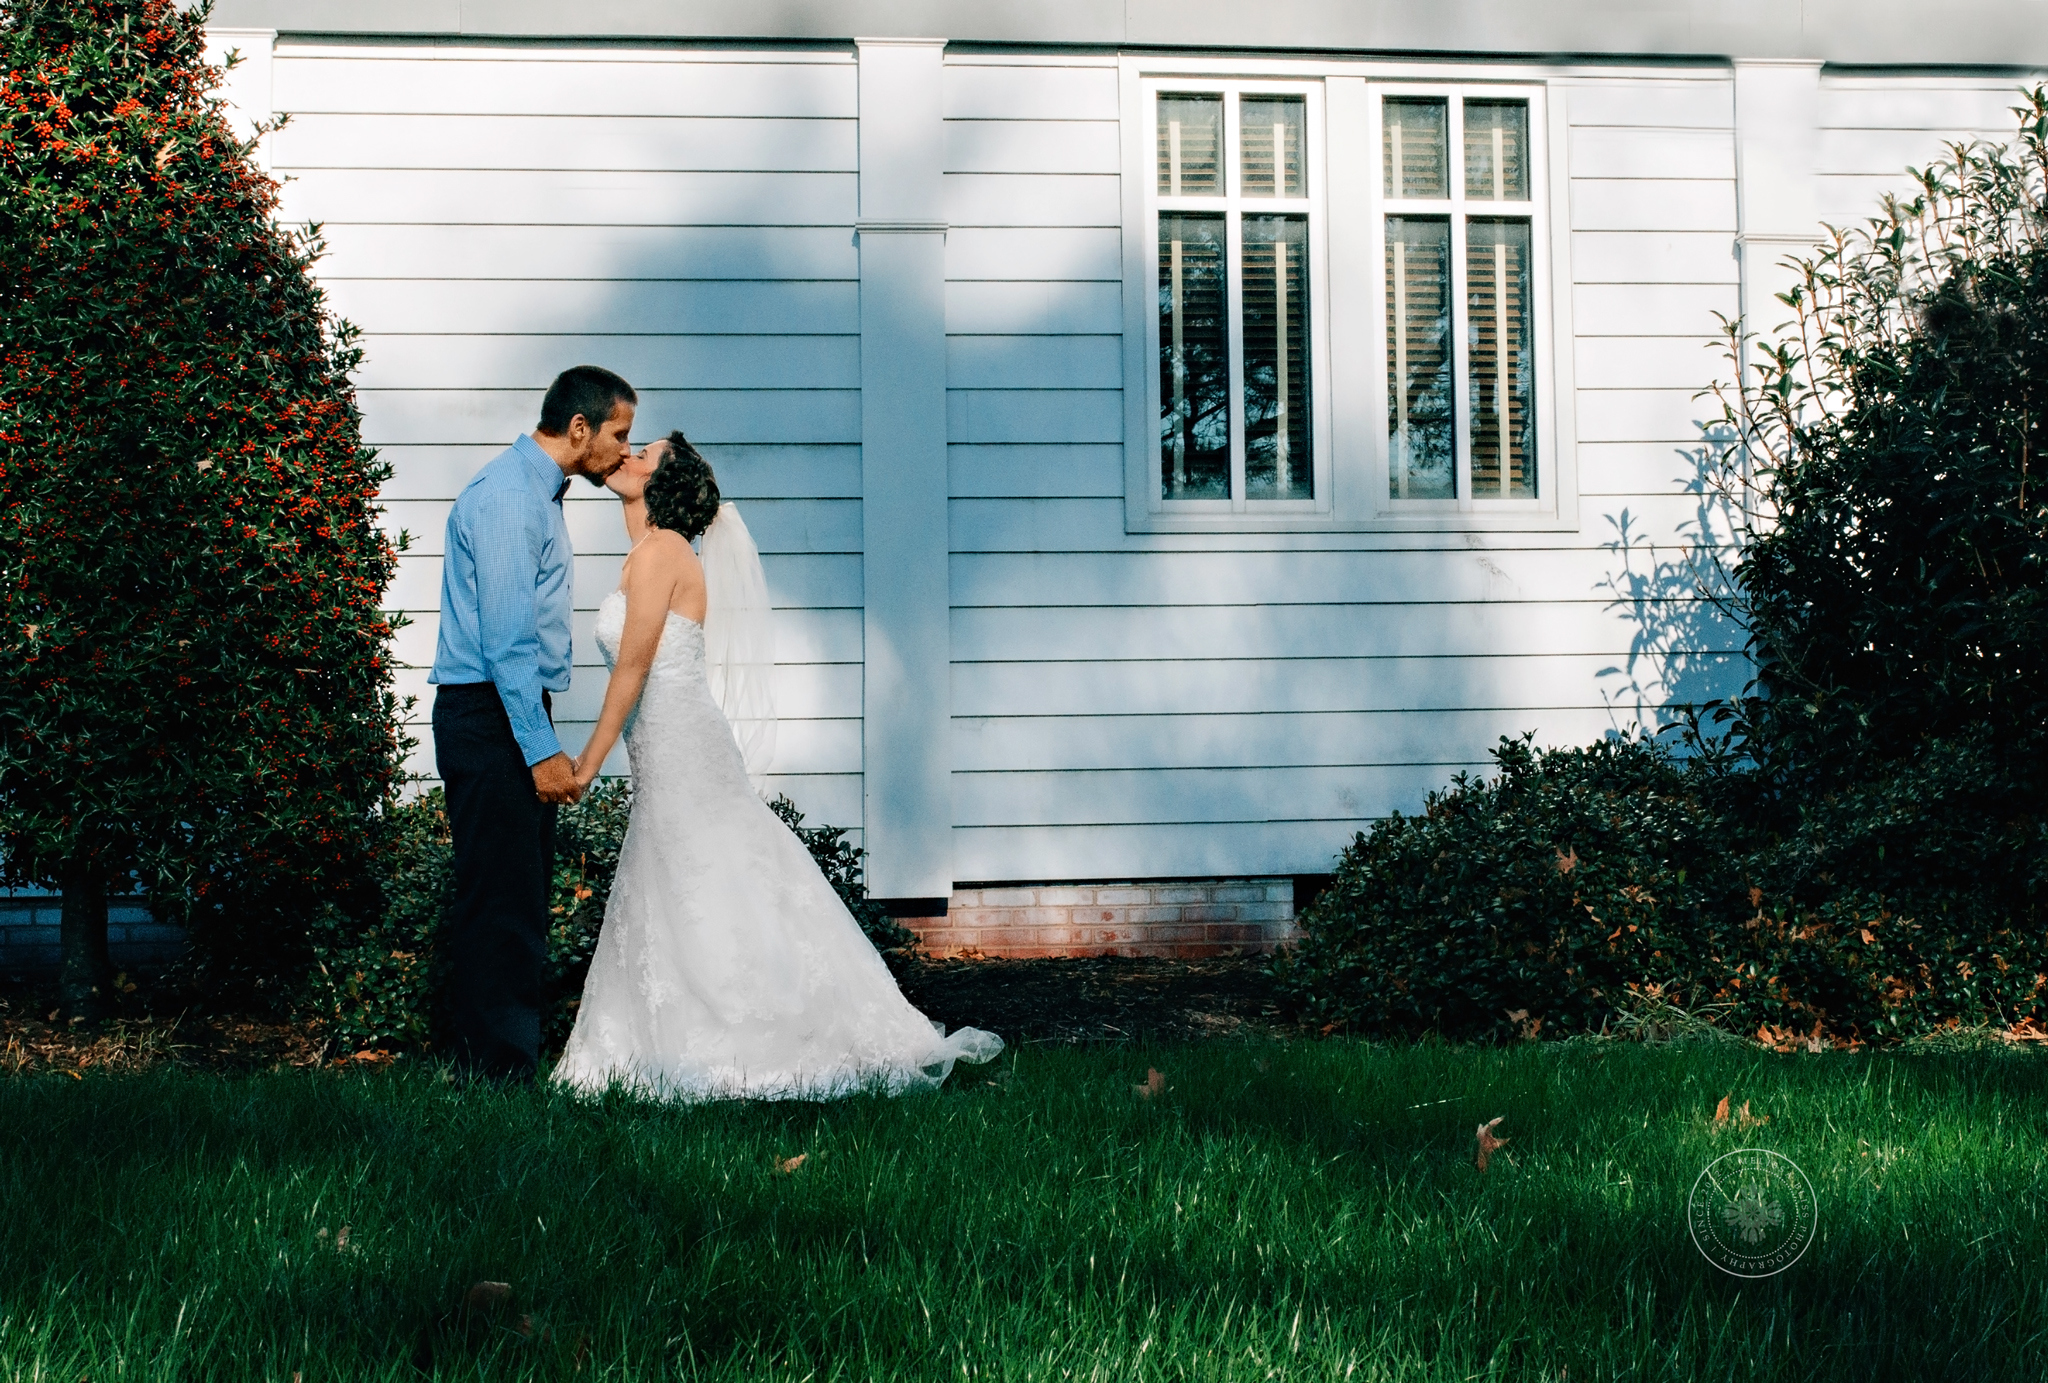 melissa-bliss-photography-virginia-beach-small-wedding-sweetwater-cuisine-catering-real-weddings